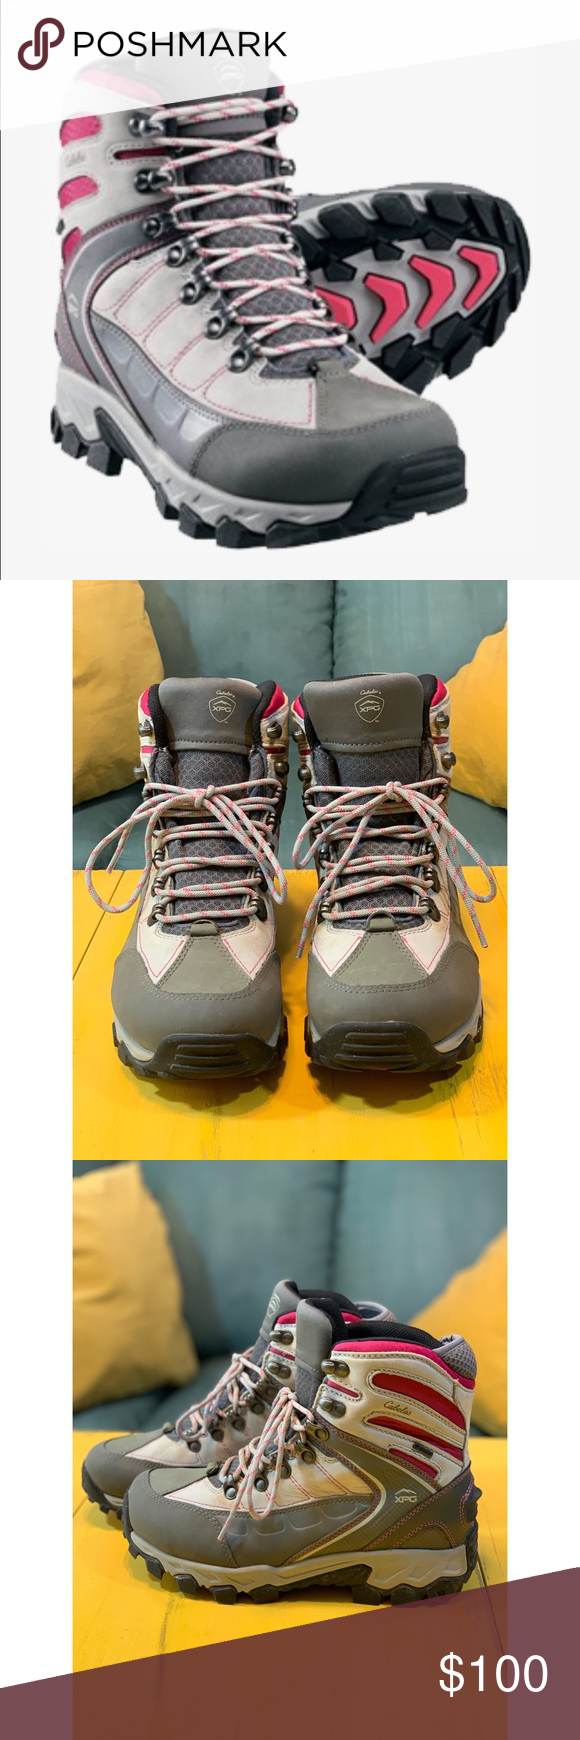 7b4efb9ca57 Cabela's XPG Women's Snow Hikers RARE COLOR and completely SOLD OUT ...